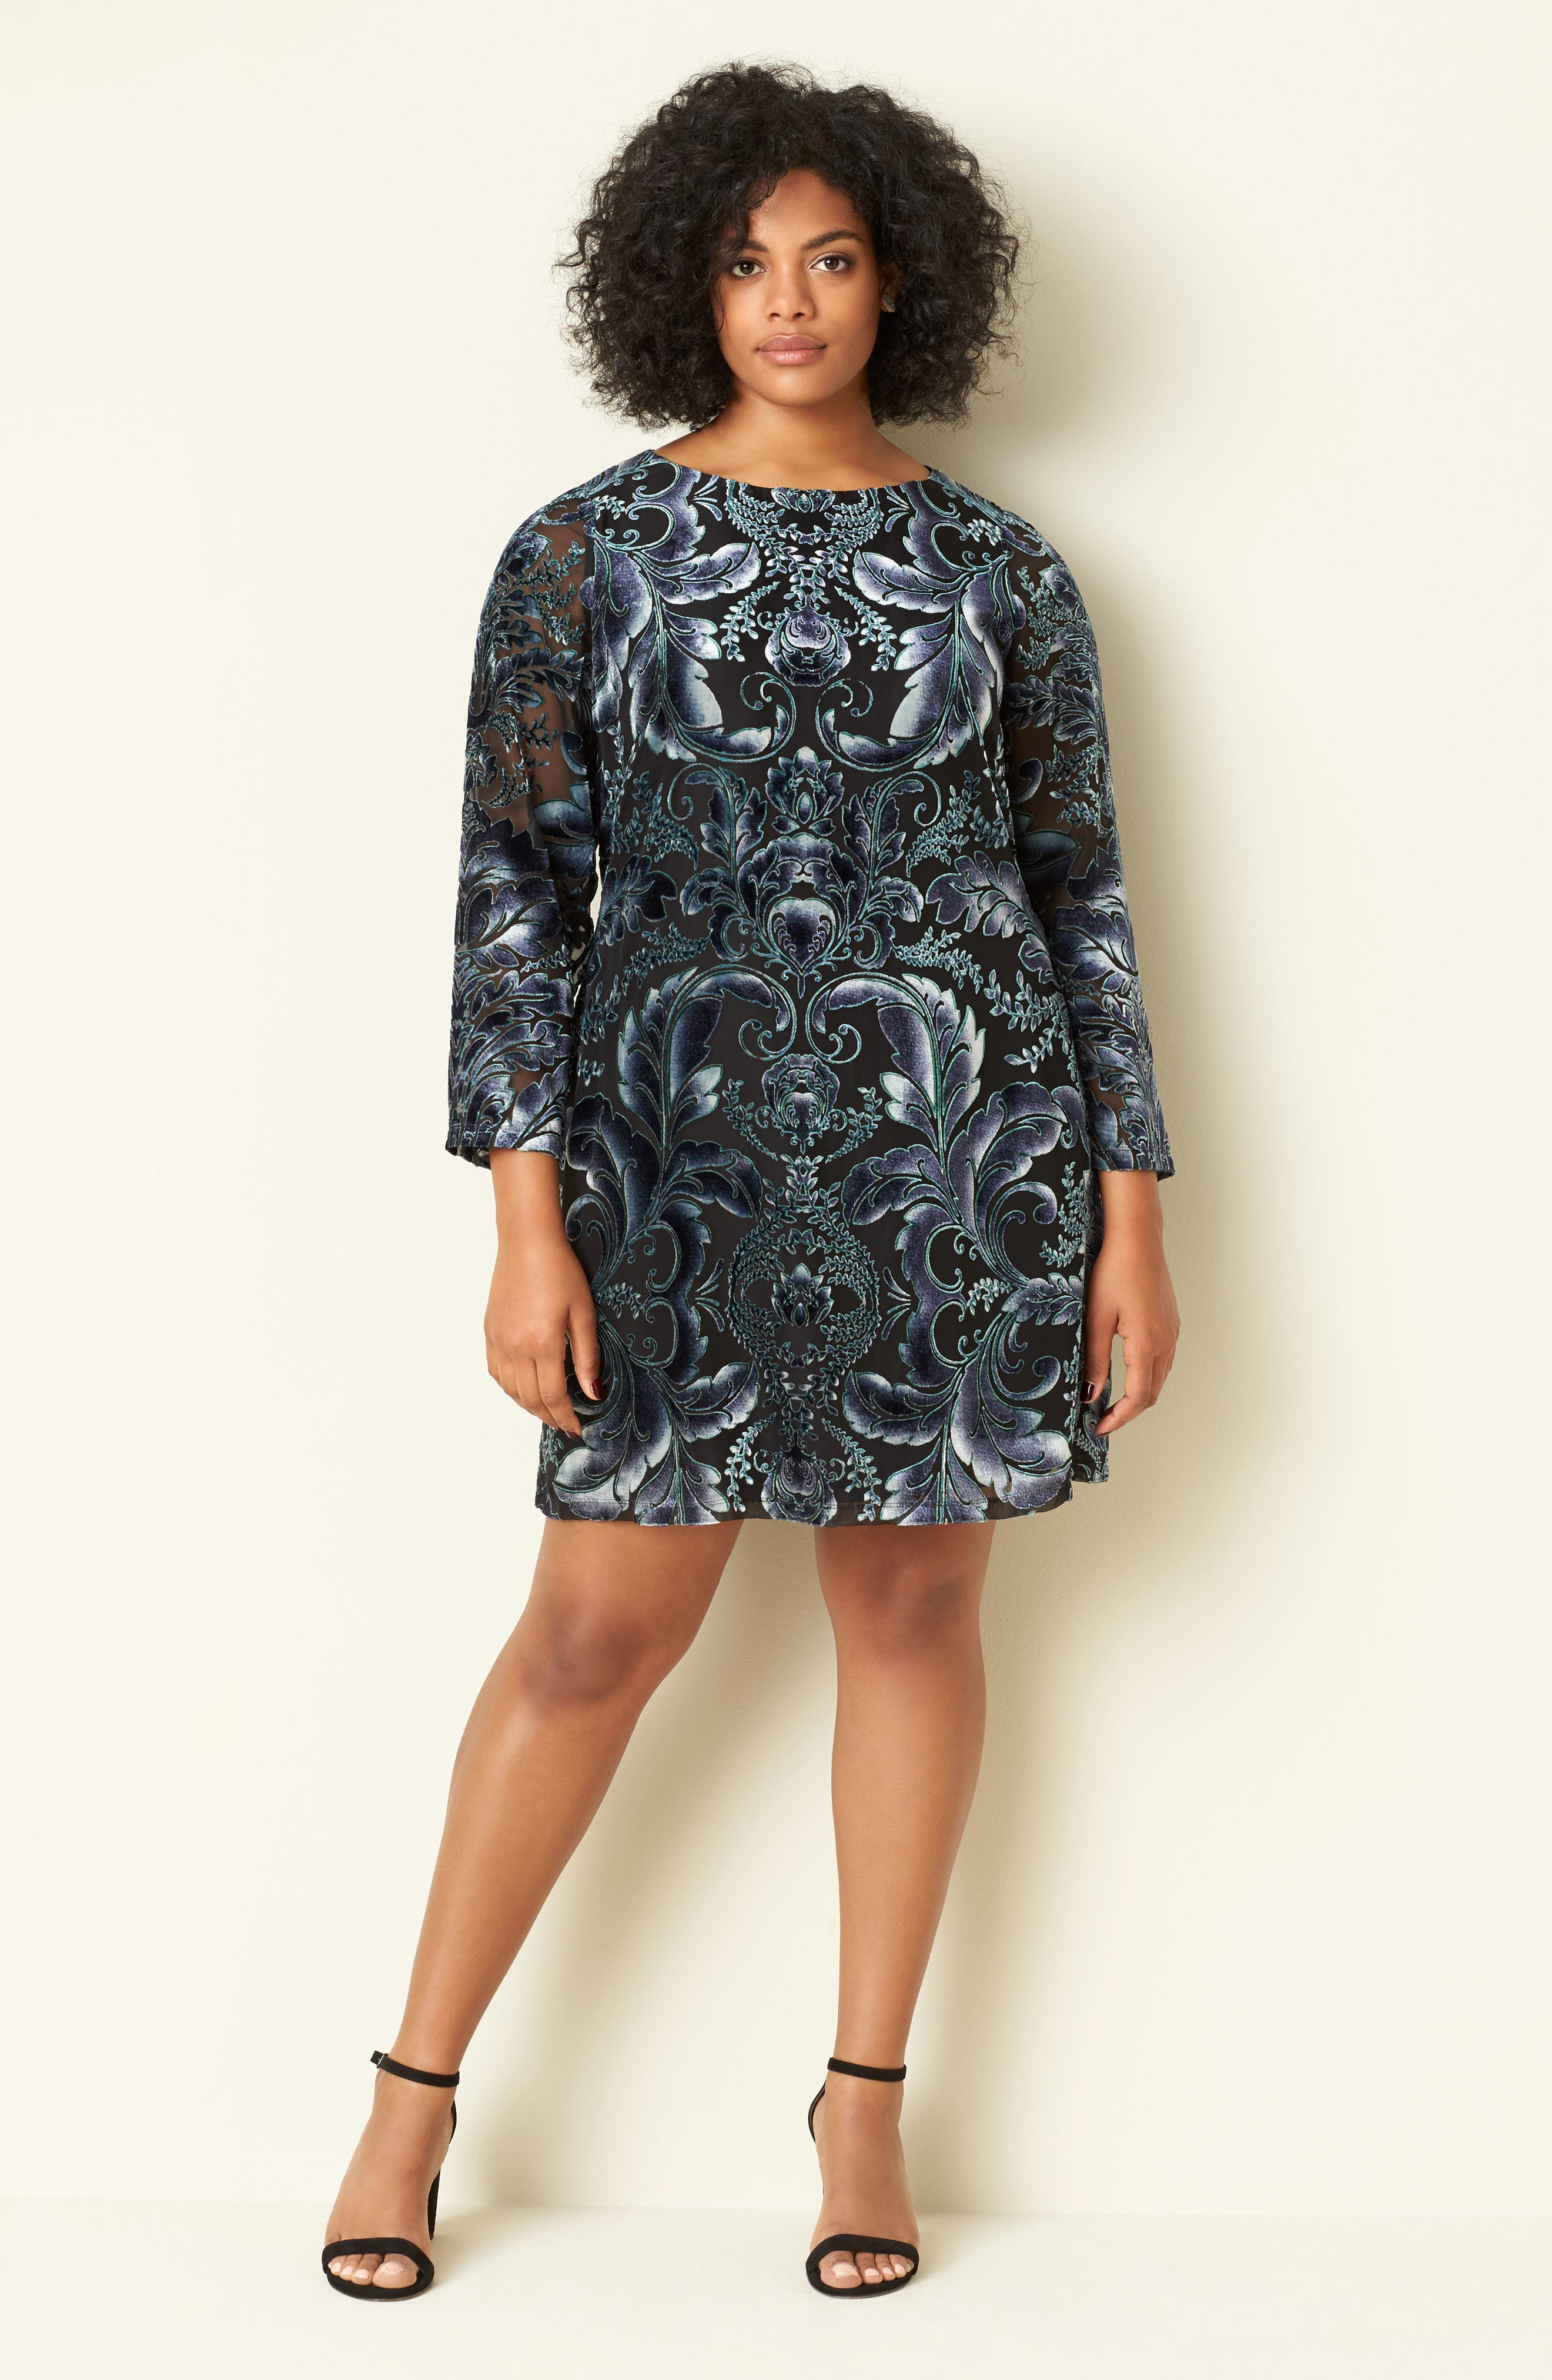 Womens wedding guest plus size dresses nordstrom ombrellifo Choice Image